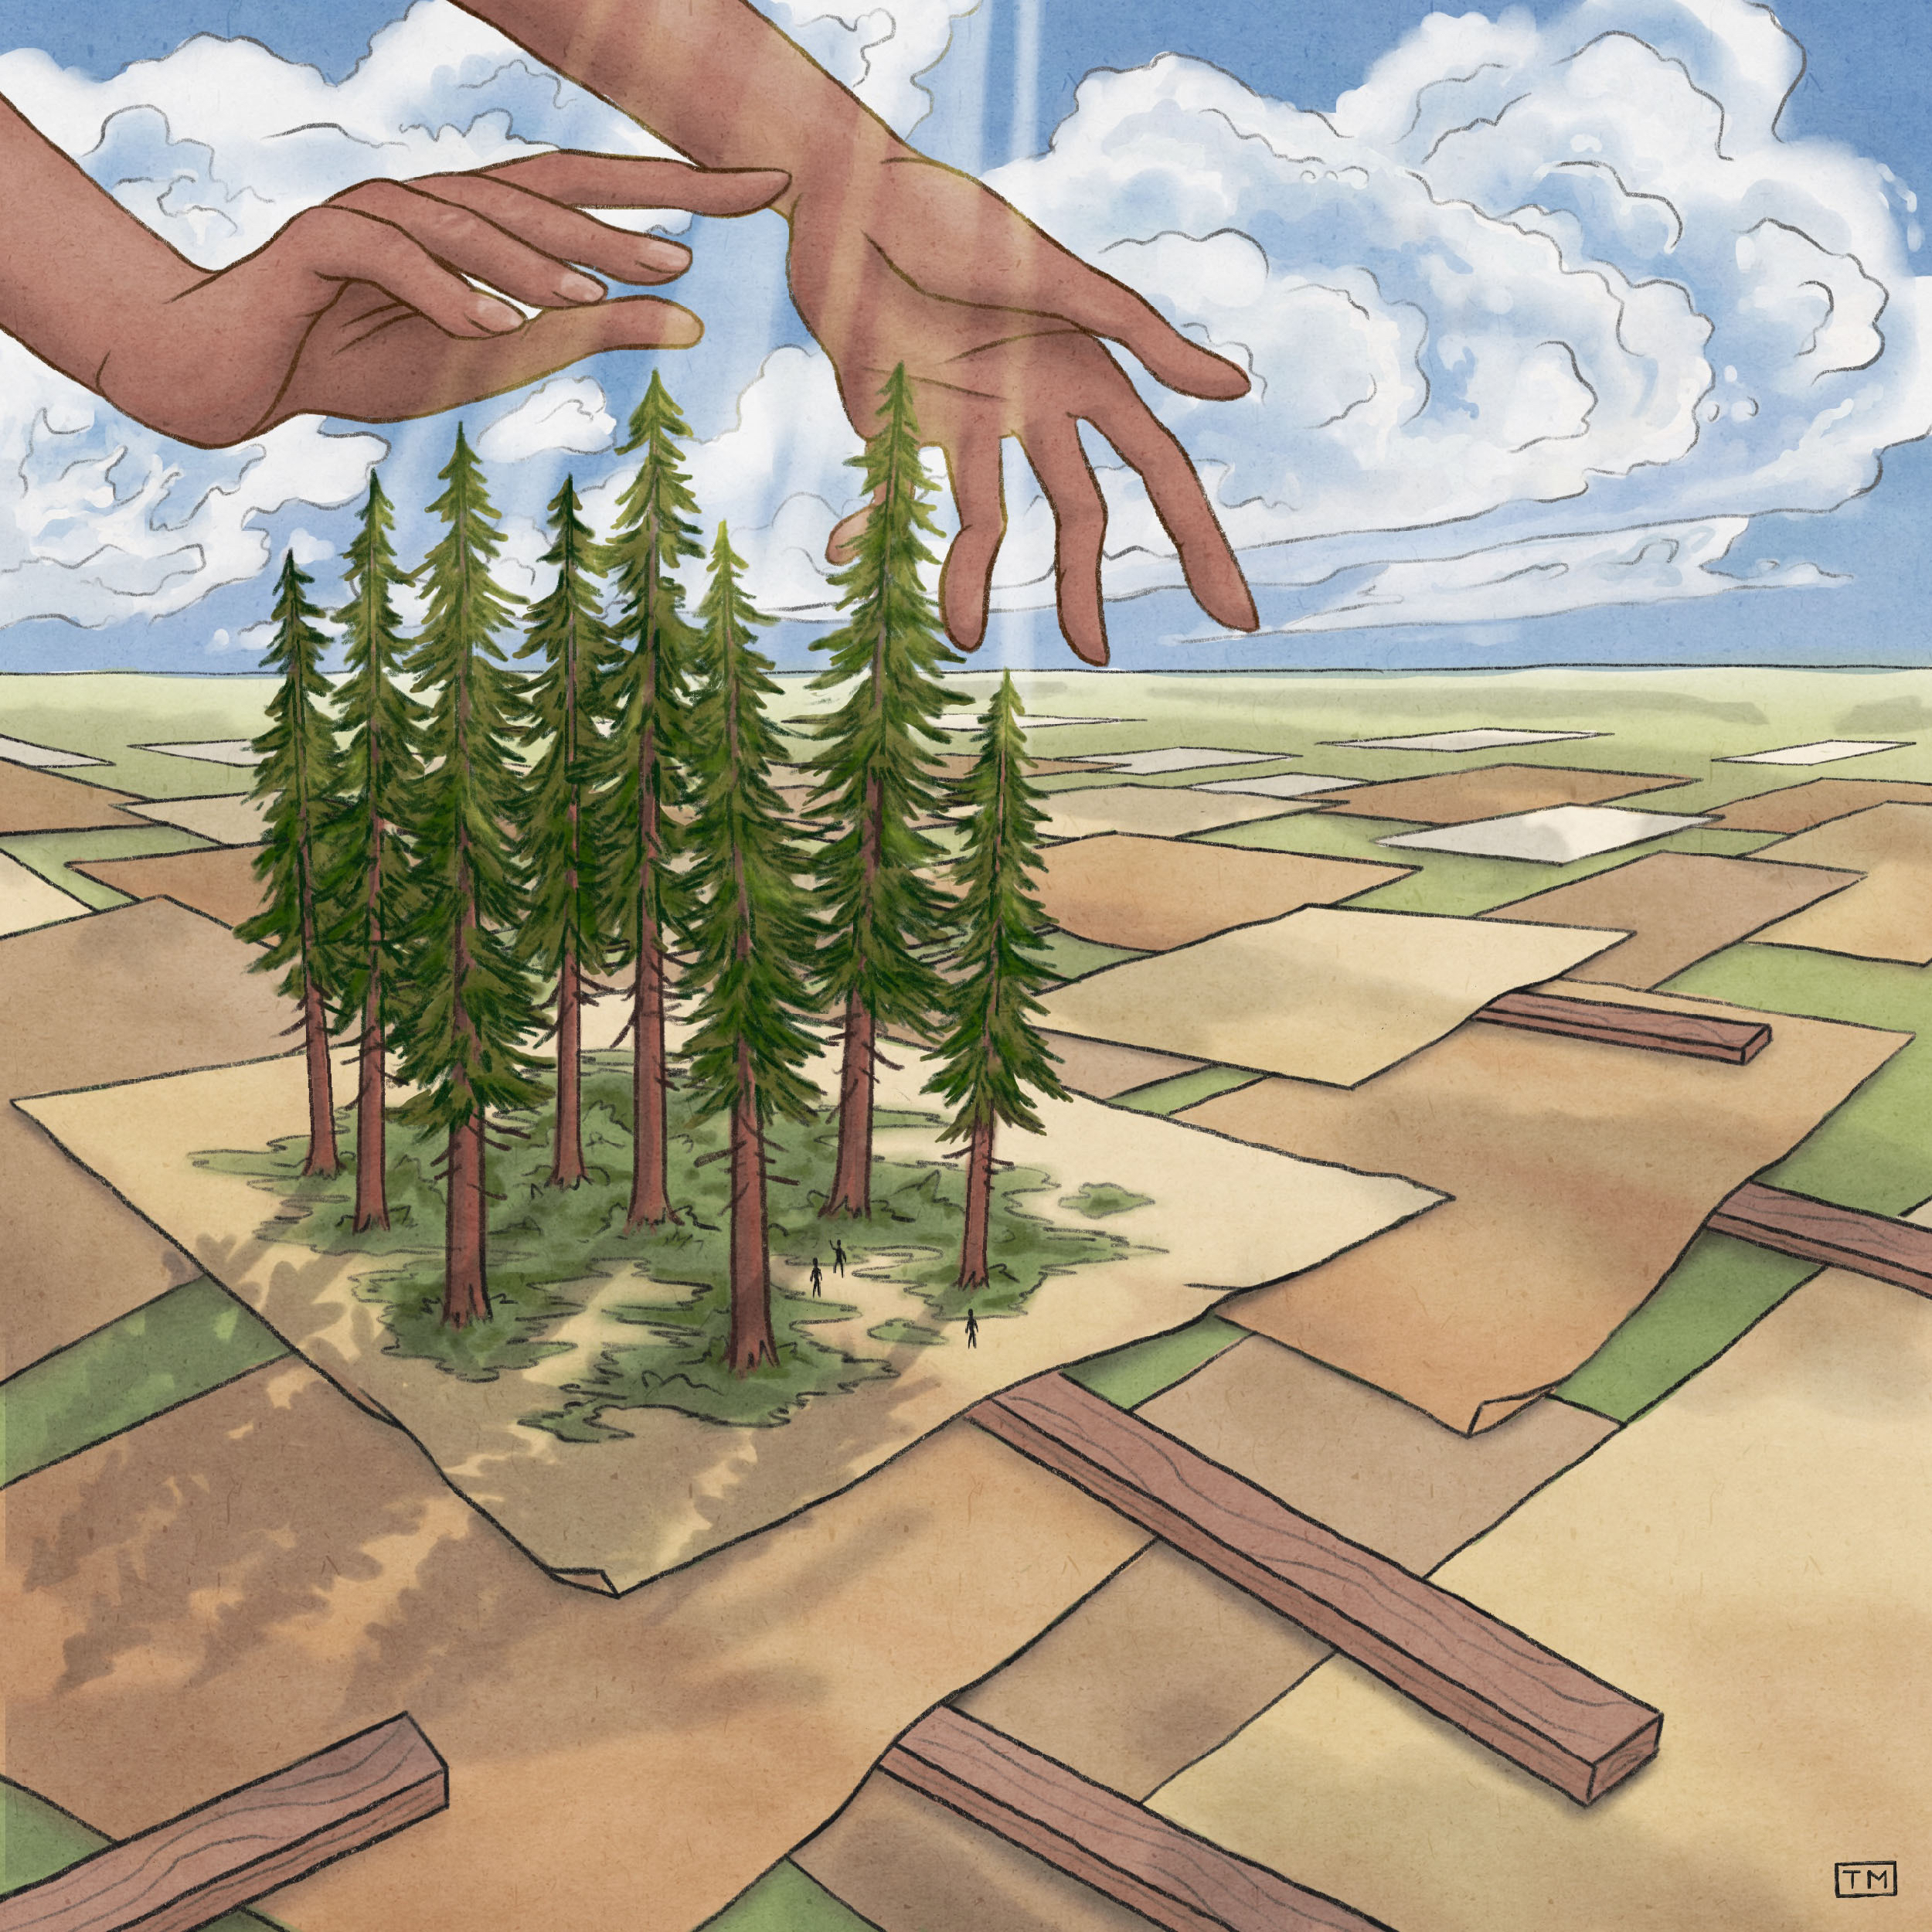 An illustration of a block of old growth trees on top of protesting signs with two hands reaching down to nurture the trees